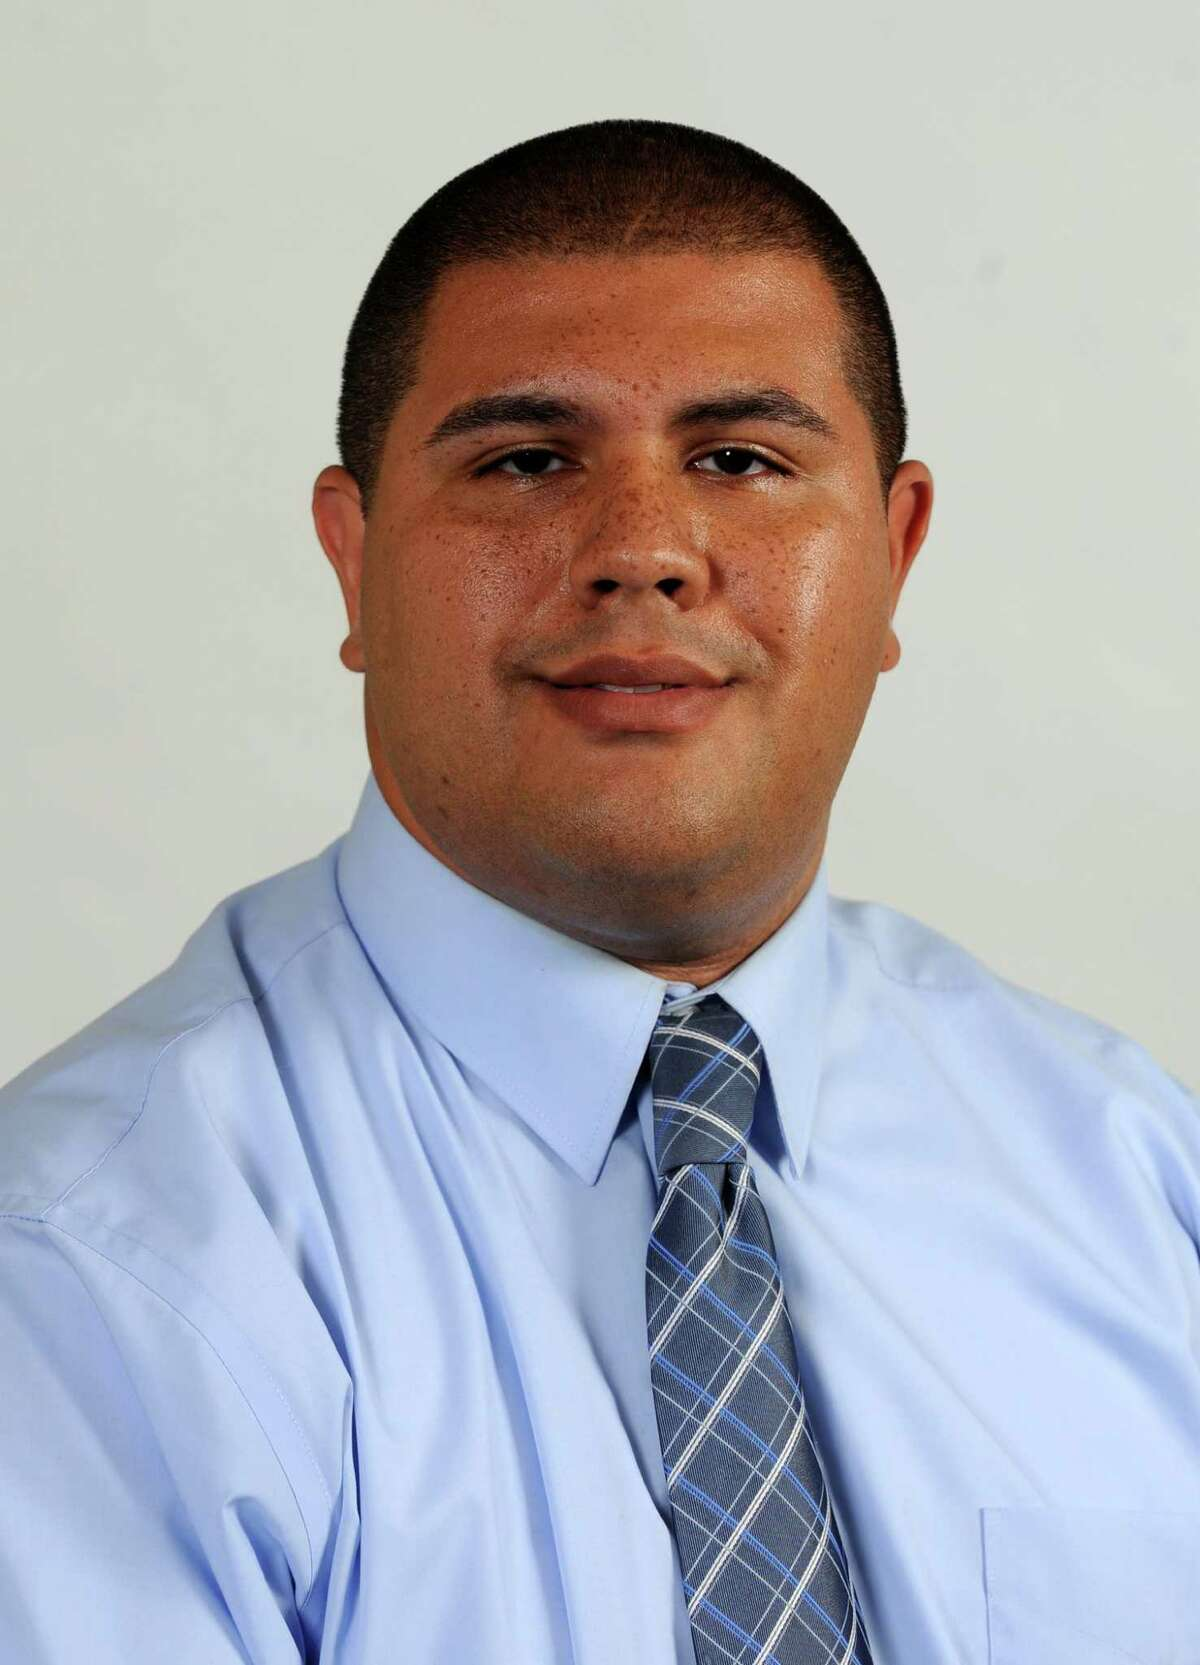 Chris Rosario is a state representative of the 128th District of Bridgeport.